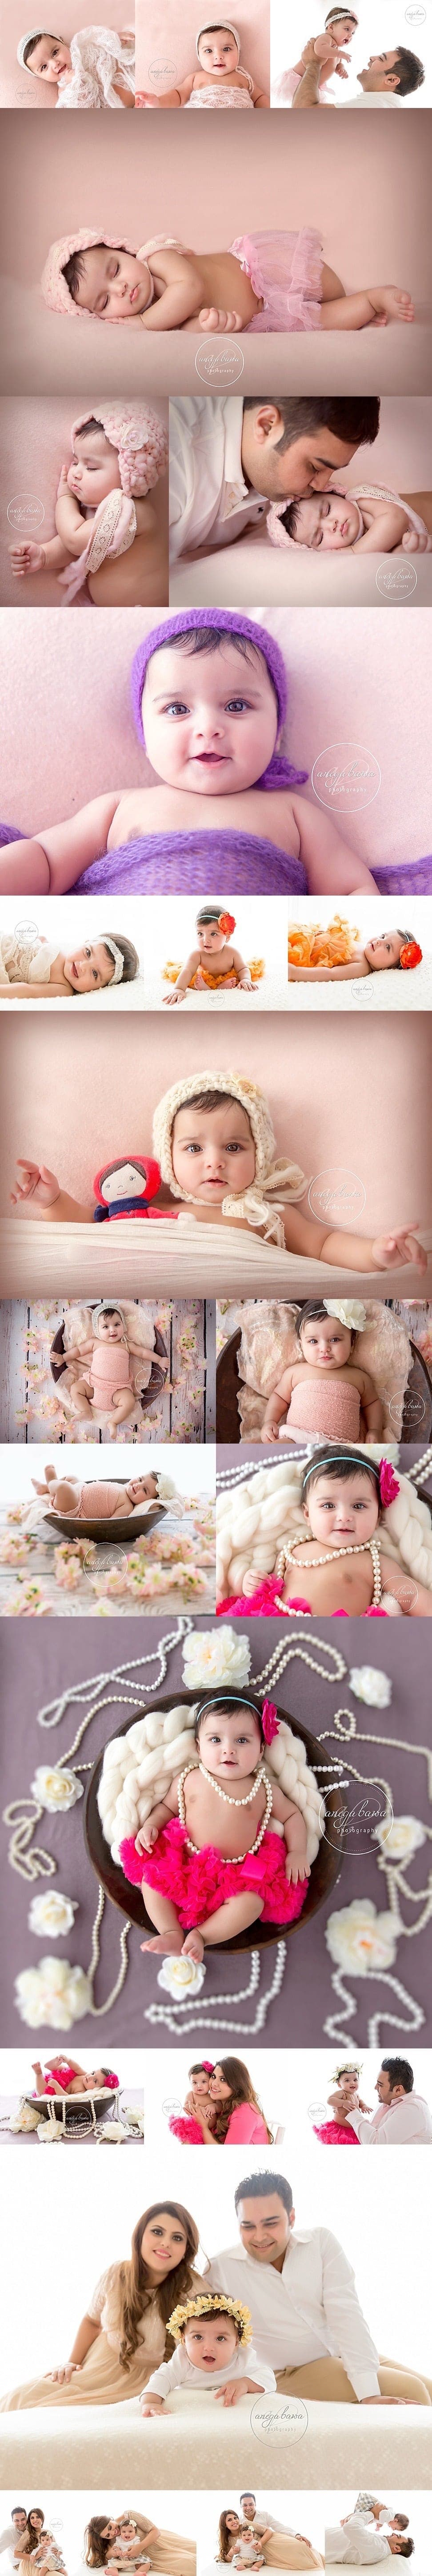 Delhi Baby Photographer - Session of 4 month girl